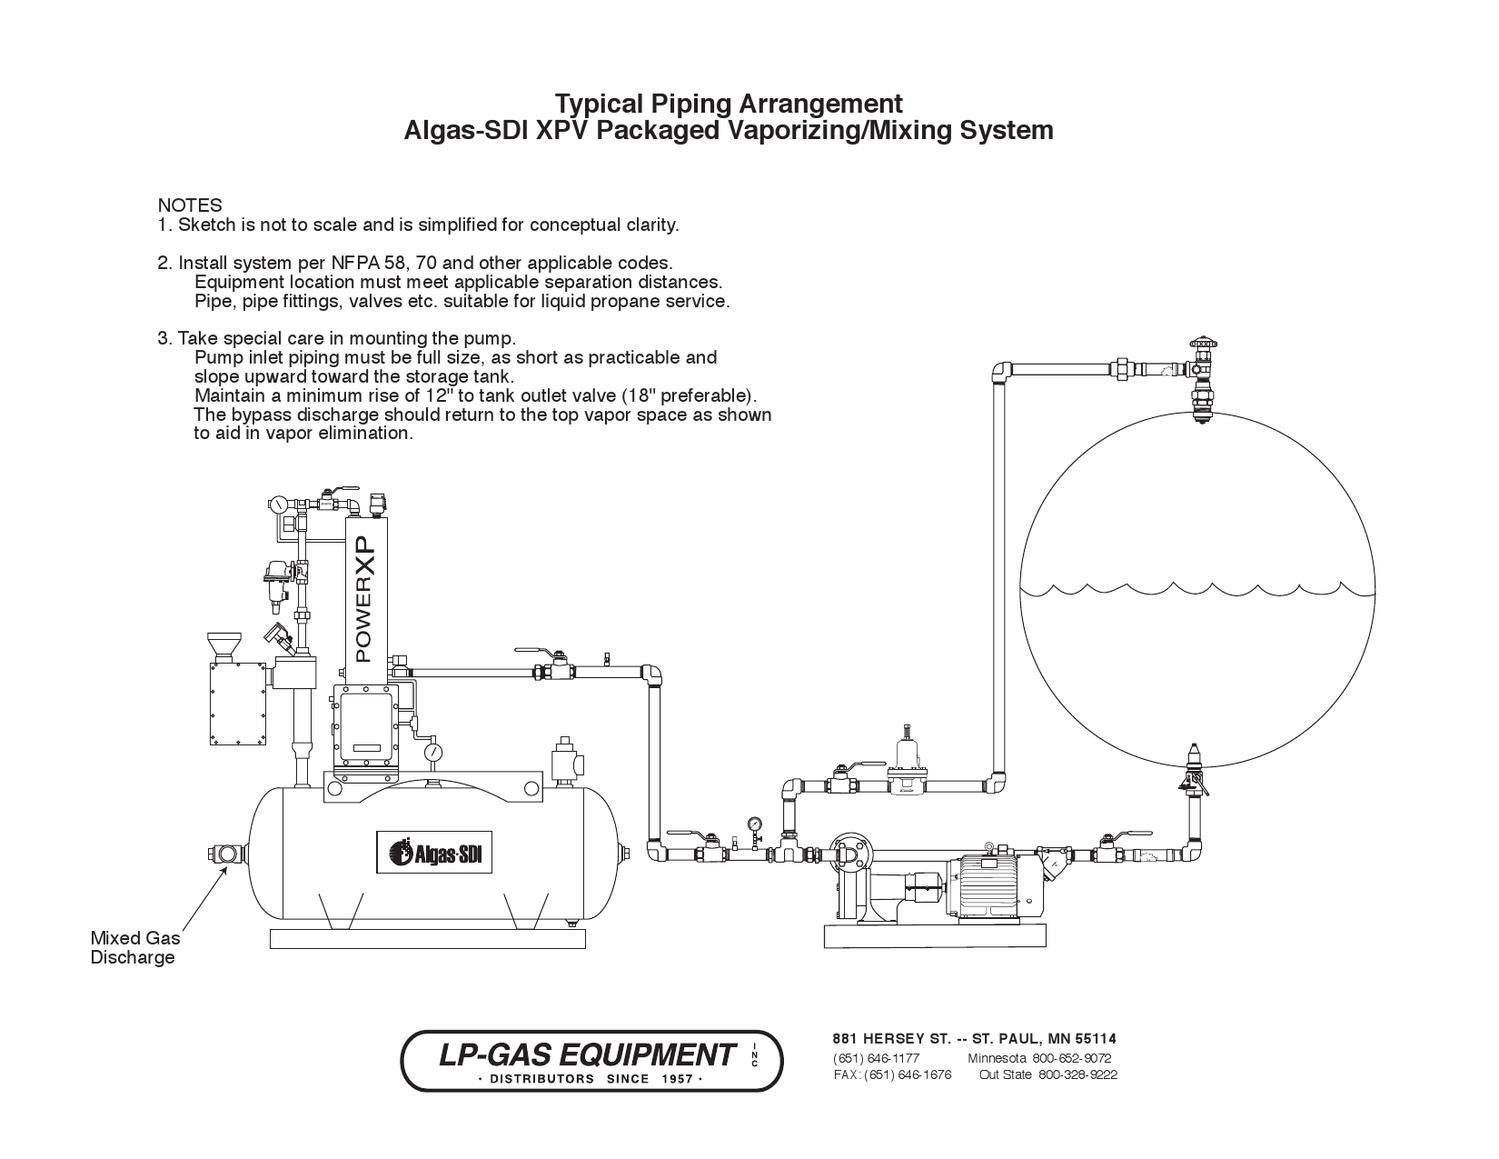 Typical Mixer   Vaporizer    Piping Arrangement by LPGas Equipment  Inc  Issuu